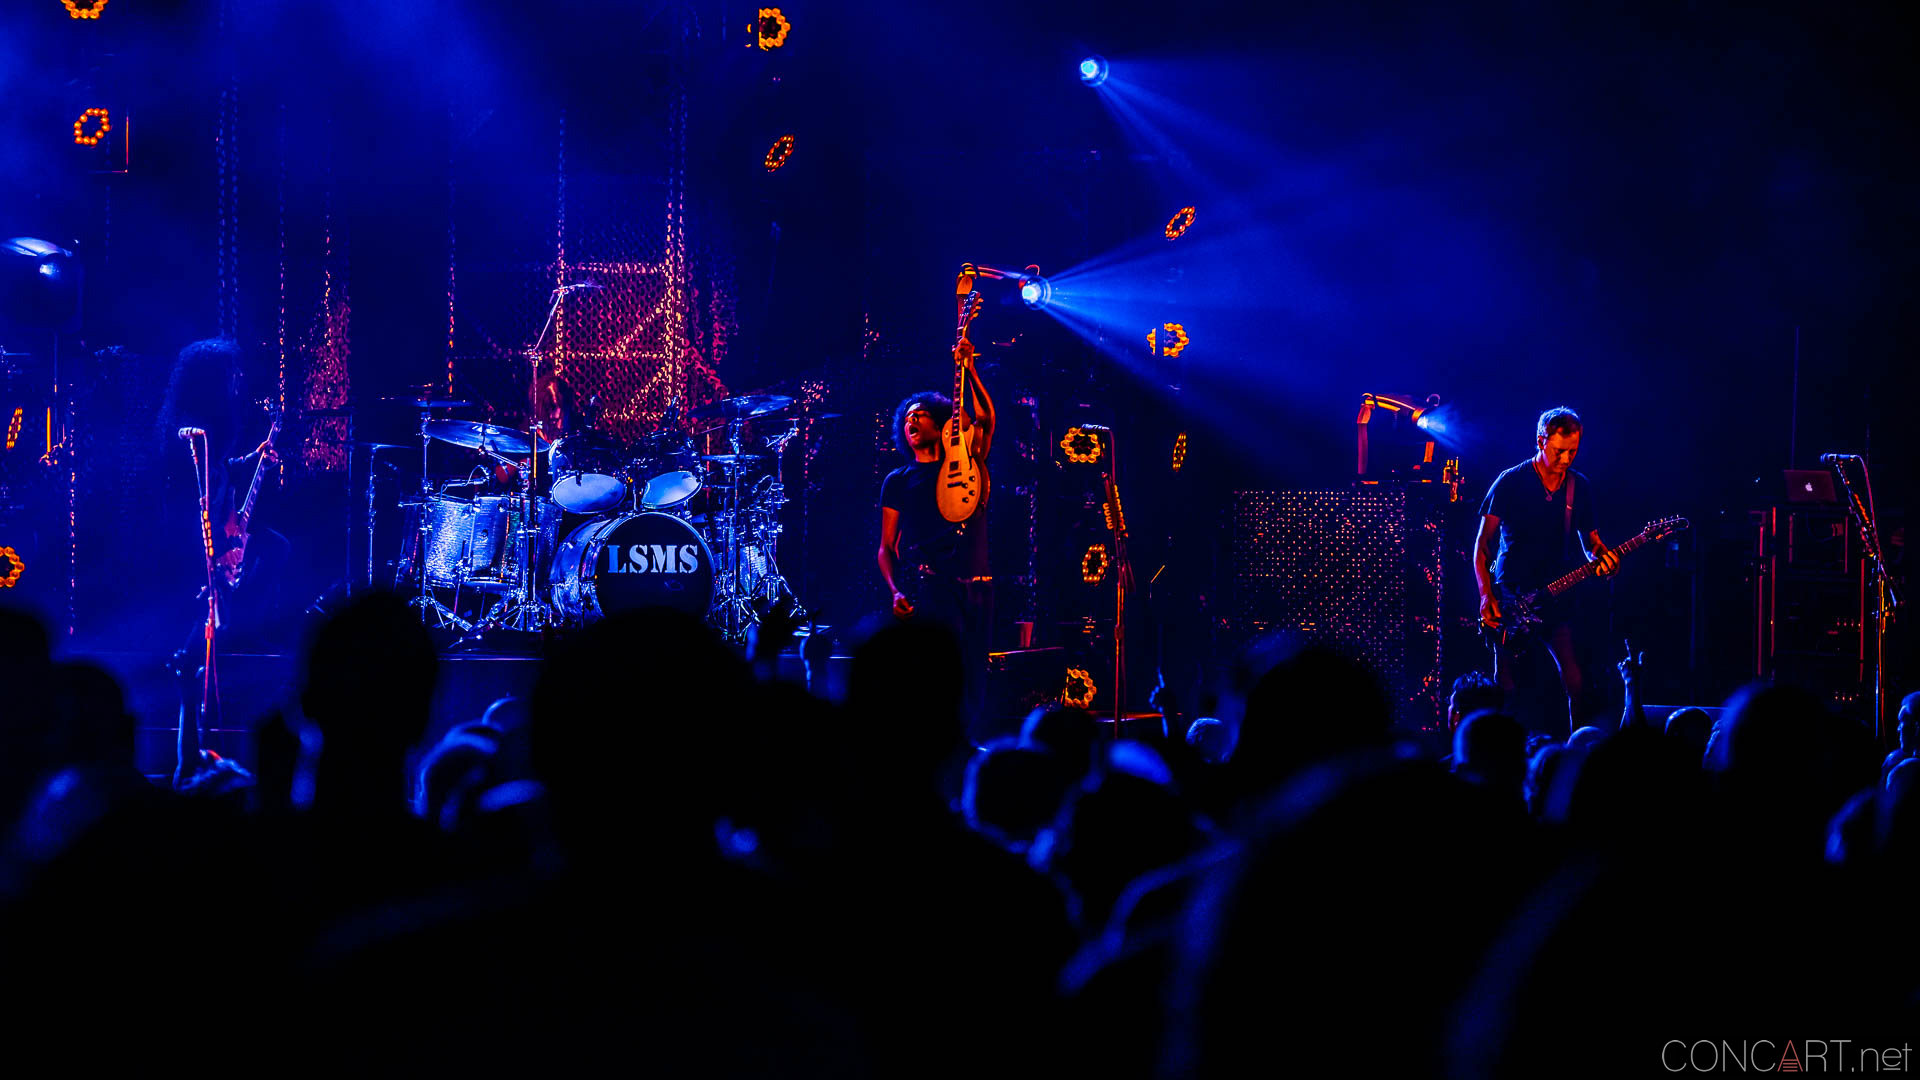 Alice In Chains photo by Sean Molin